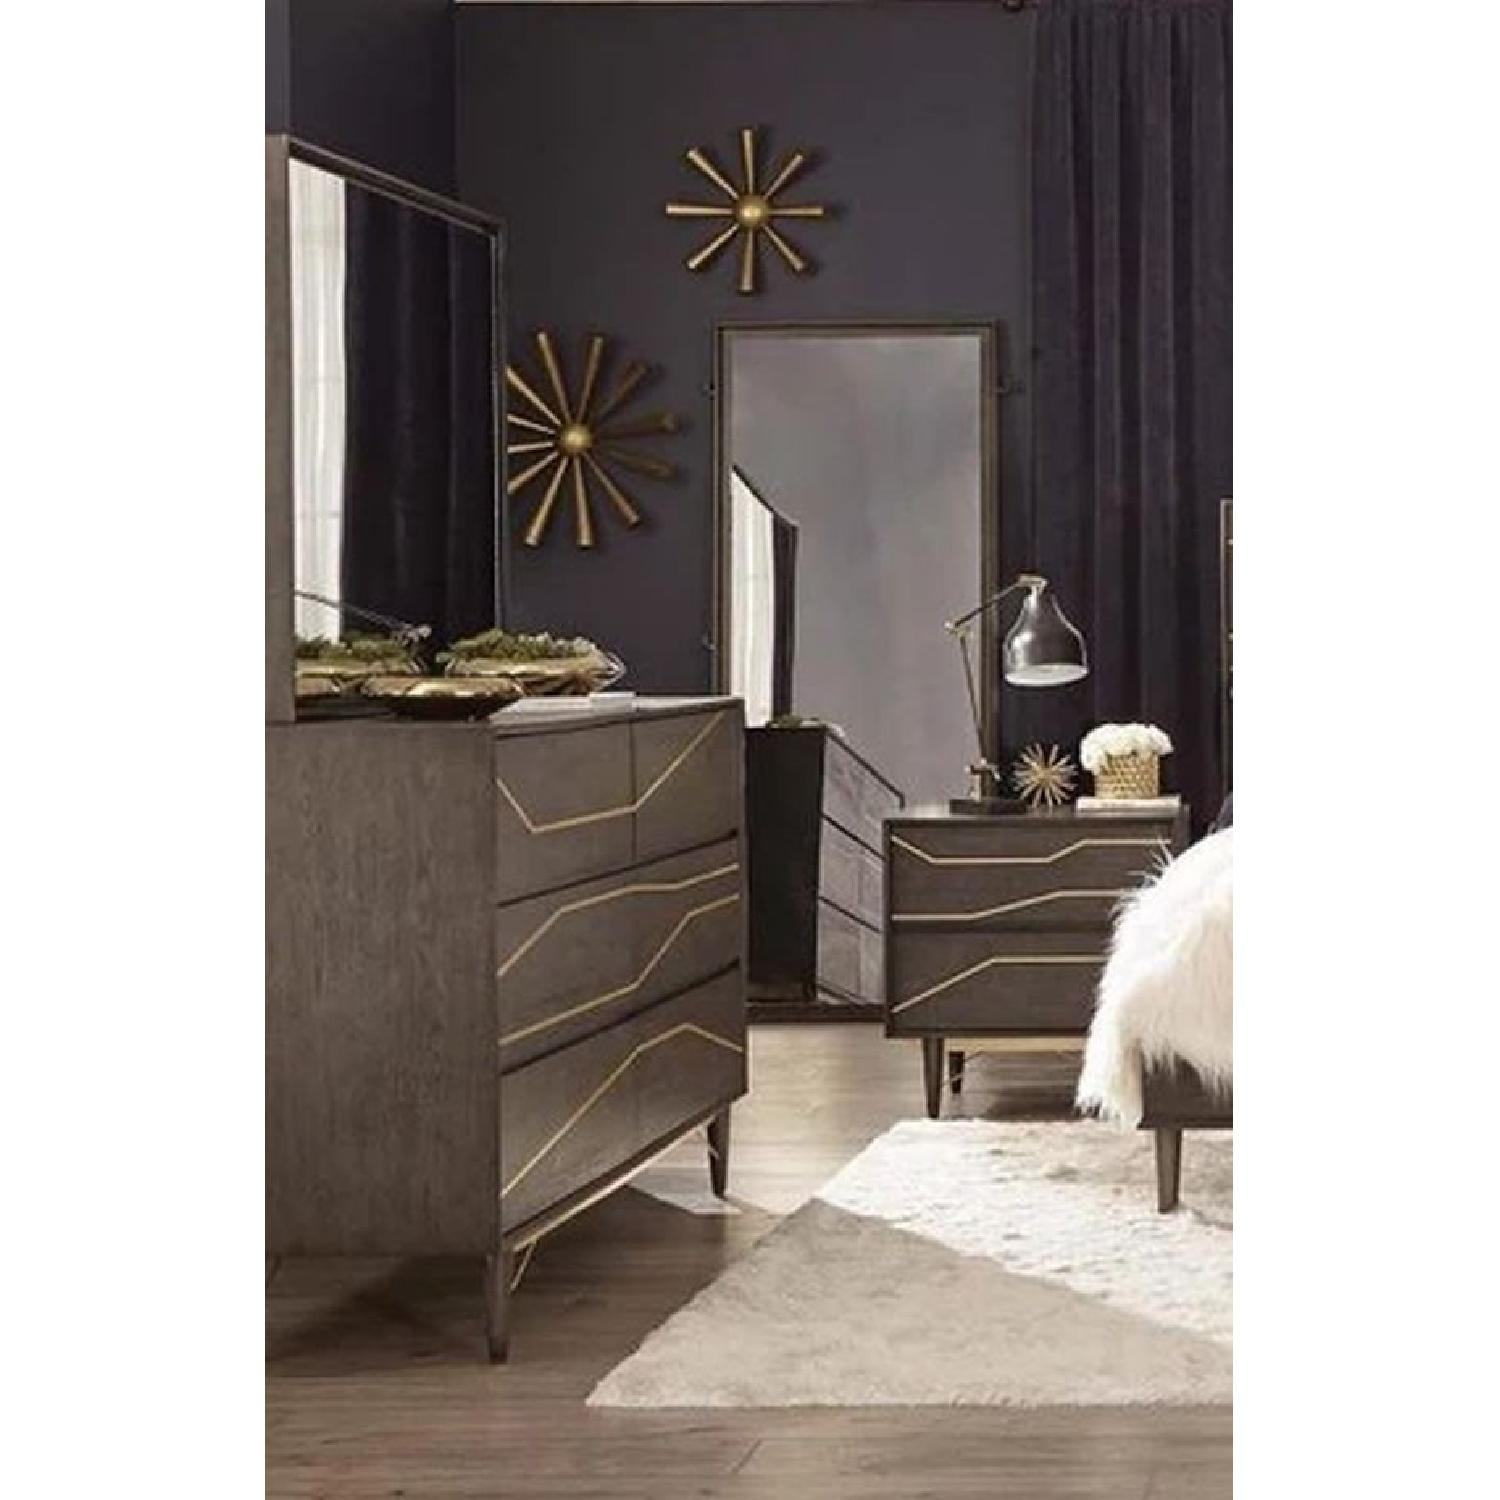 Modern Nightstand in Graphite Finish w/ Gold Color Inlay - image-2